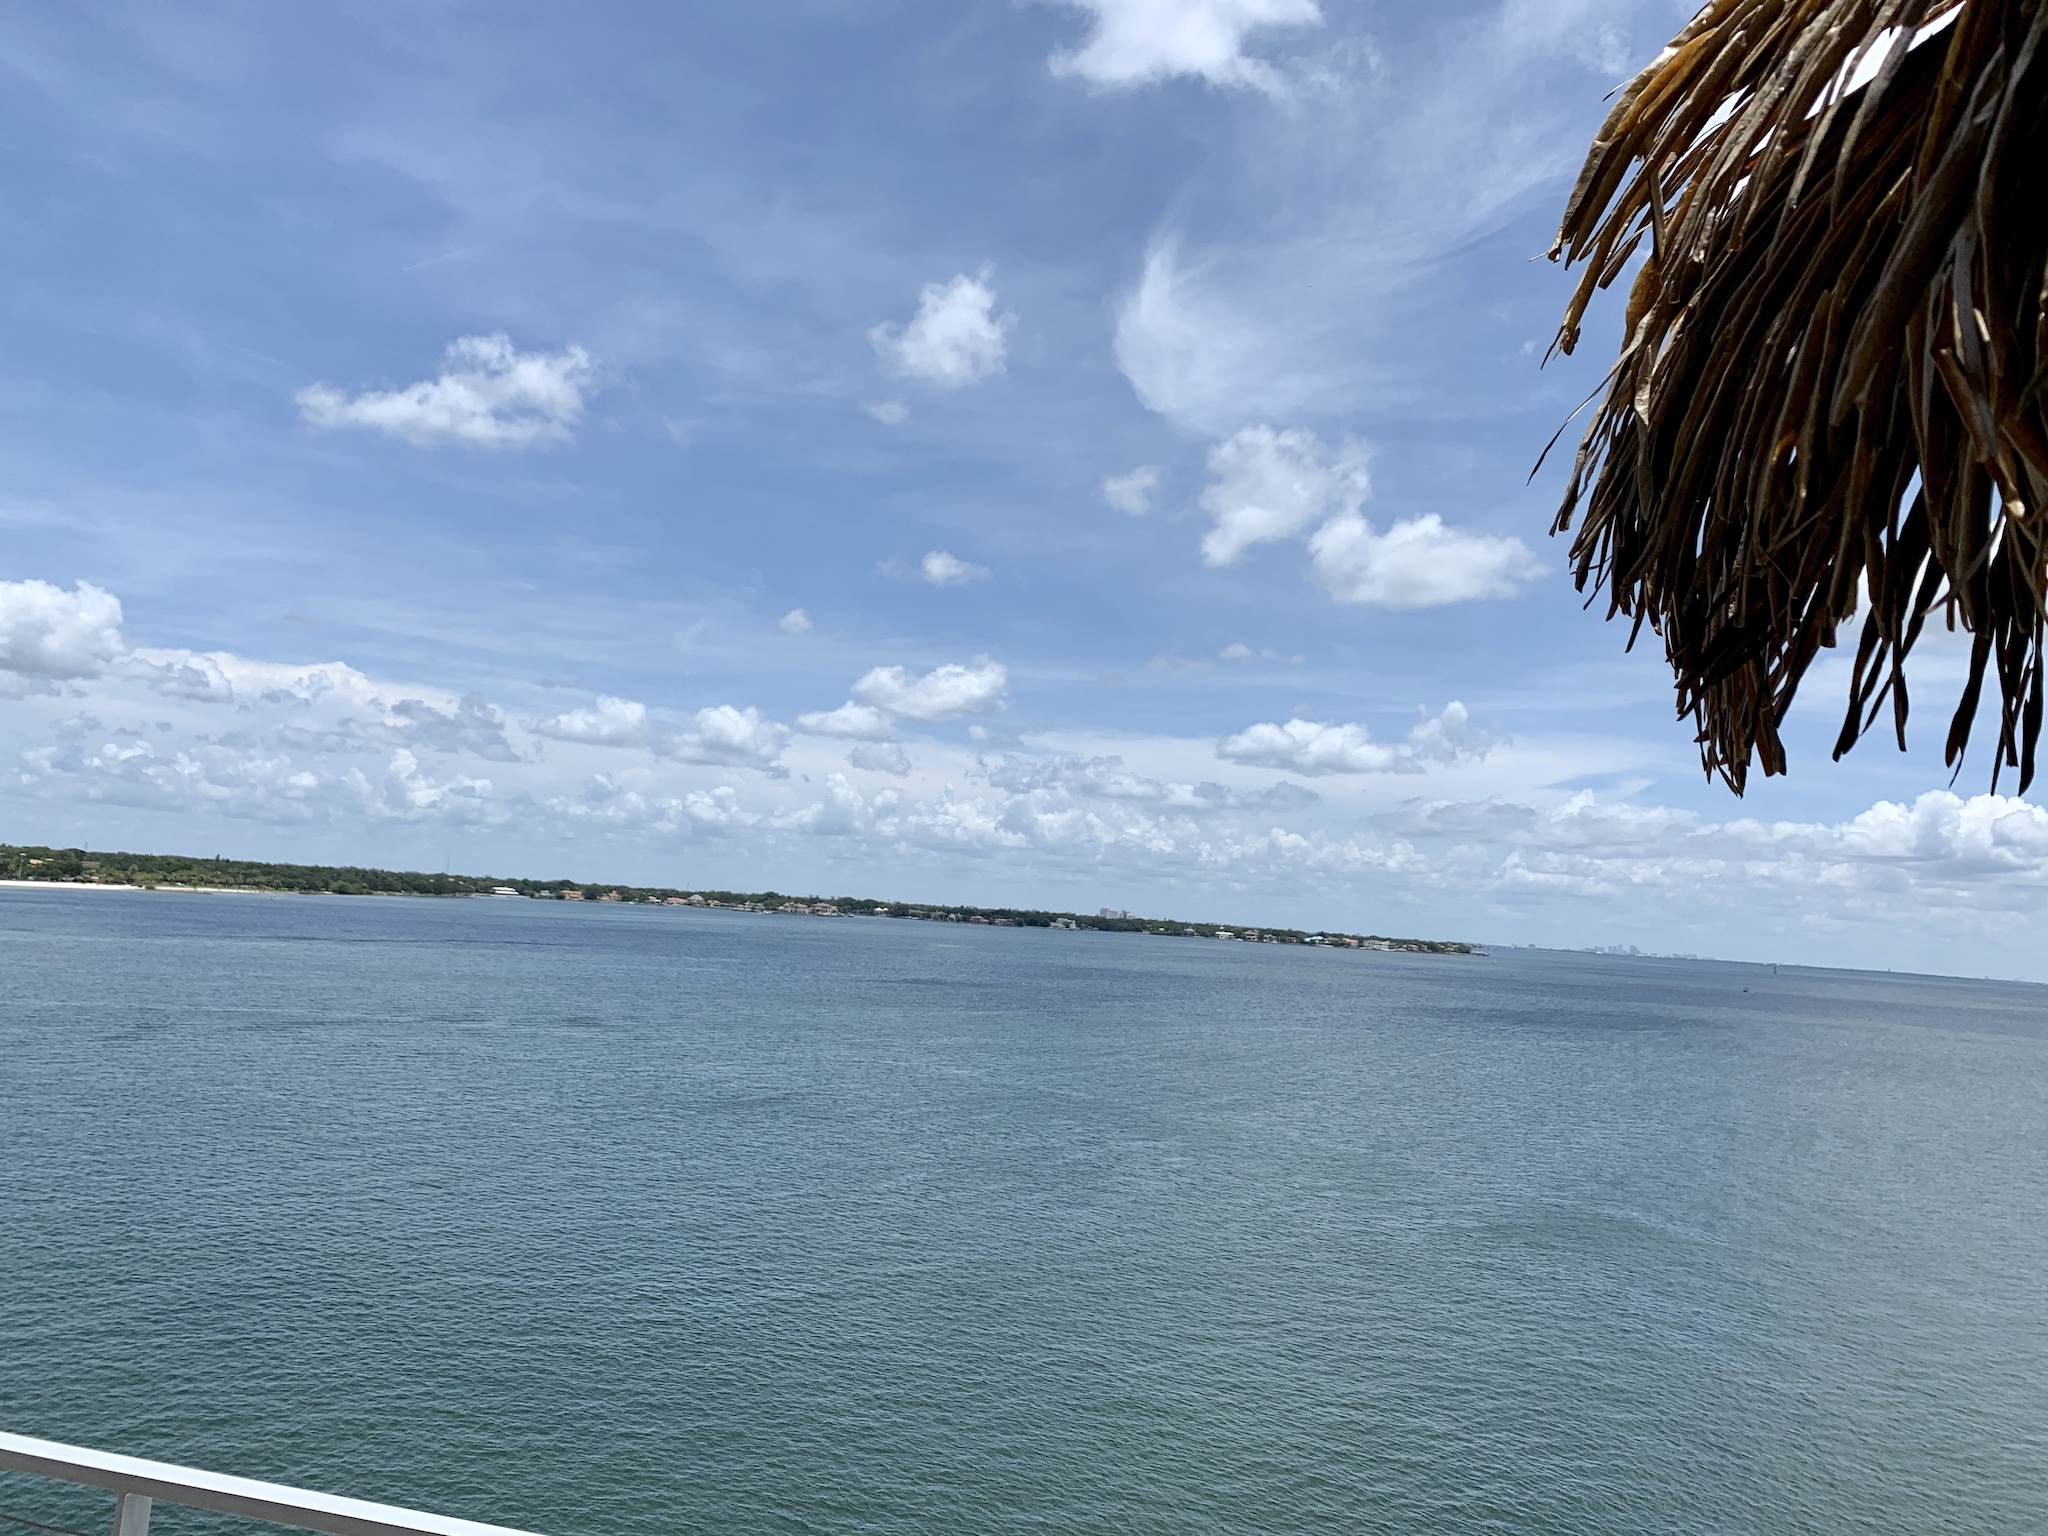 Pier Teaki at the St Pete Pier - View from the back bar facing Tampa Bay.